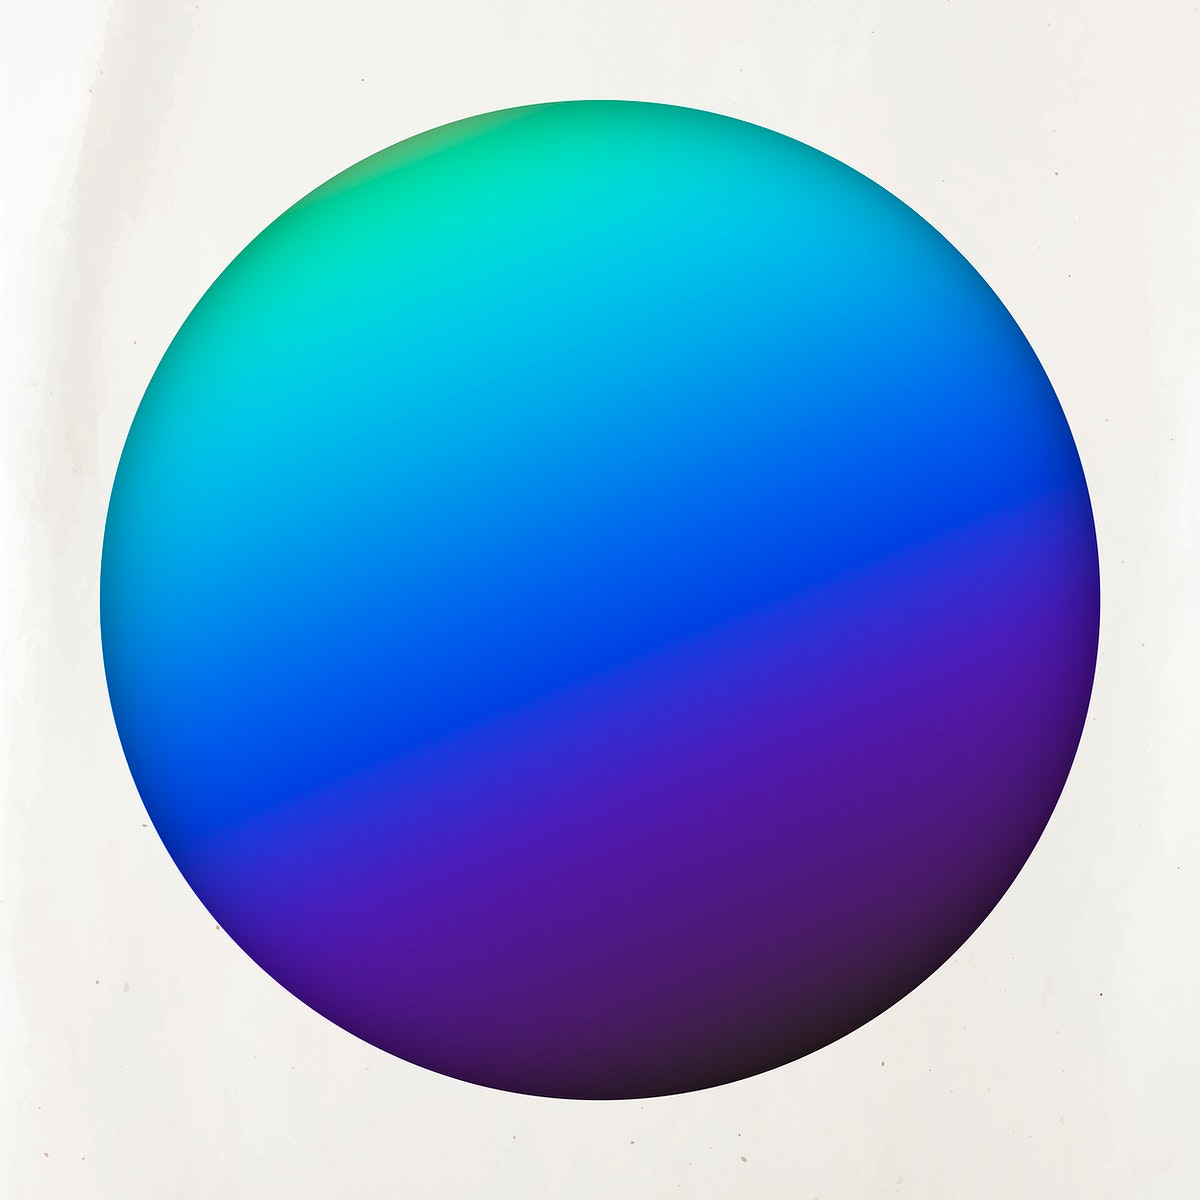 Round blue and purple holographic pattern background vector